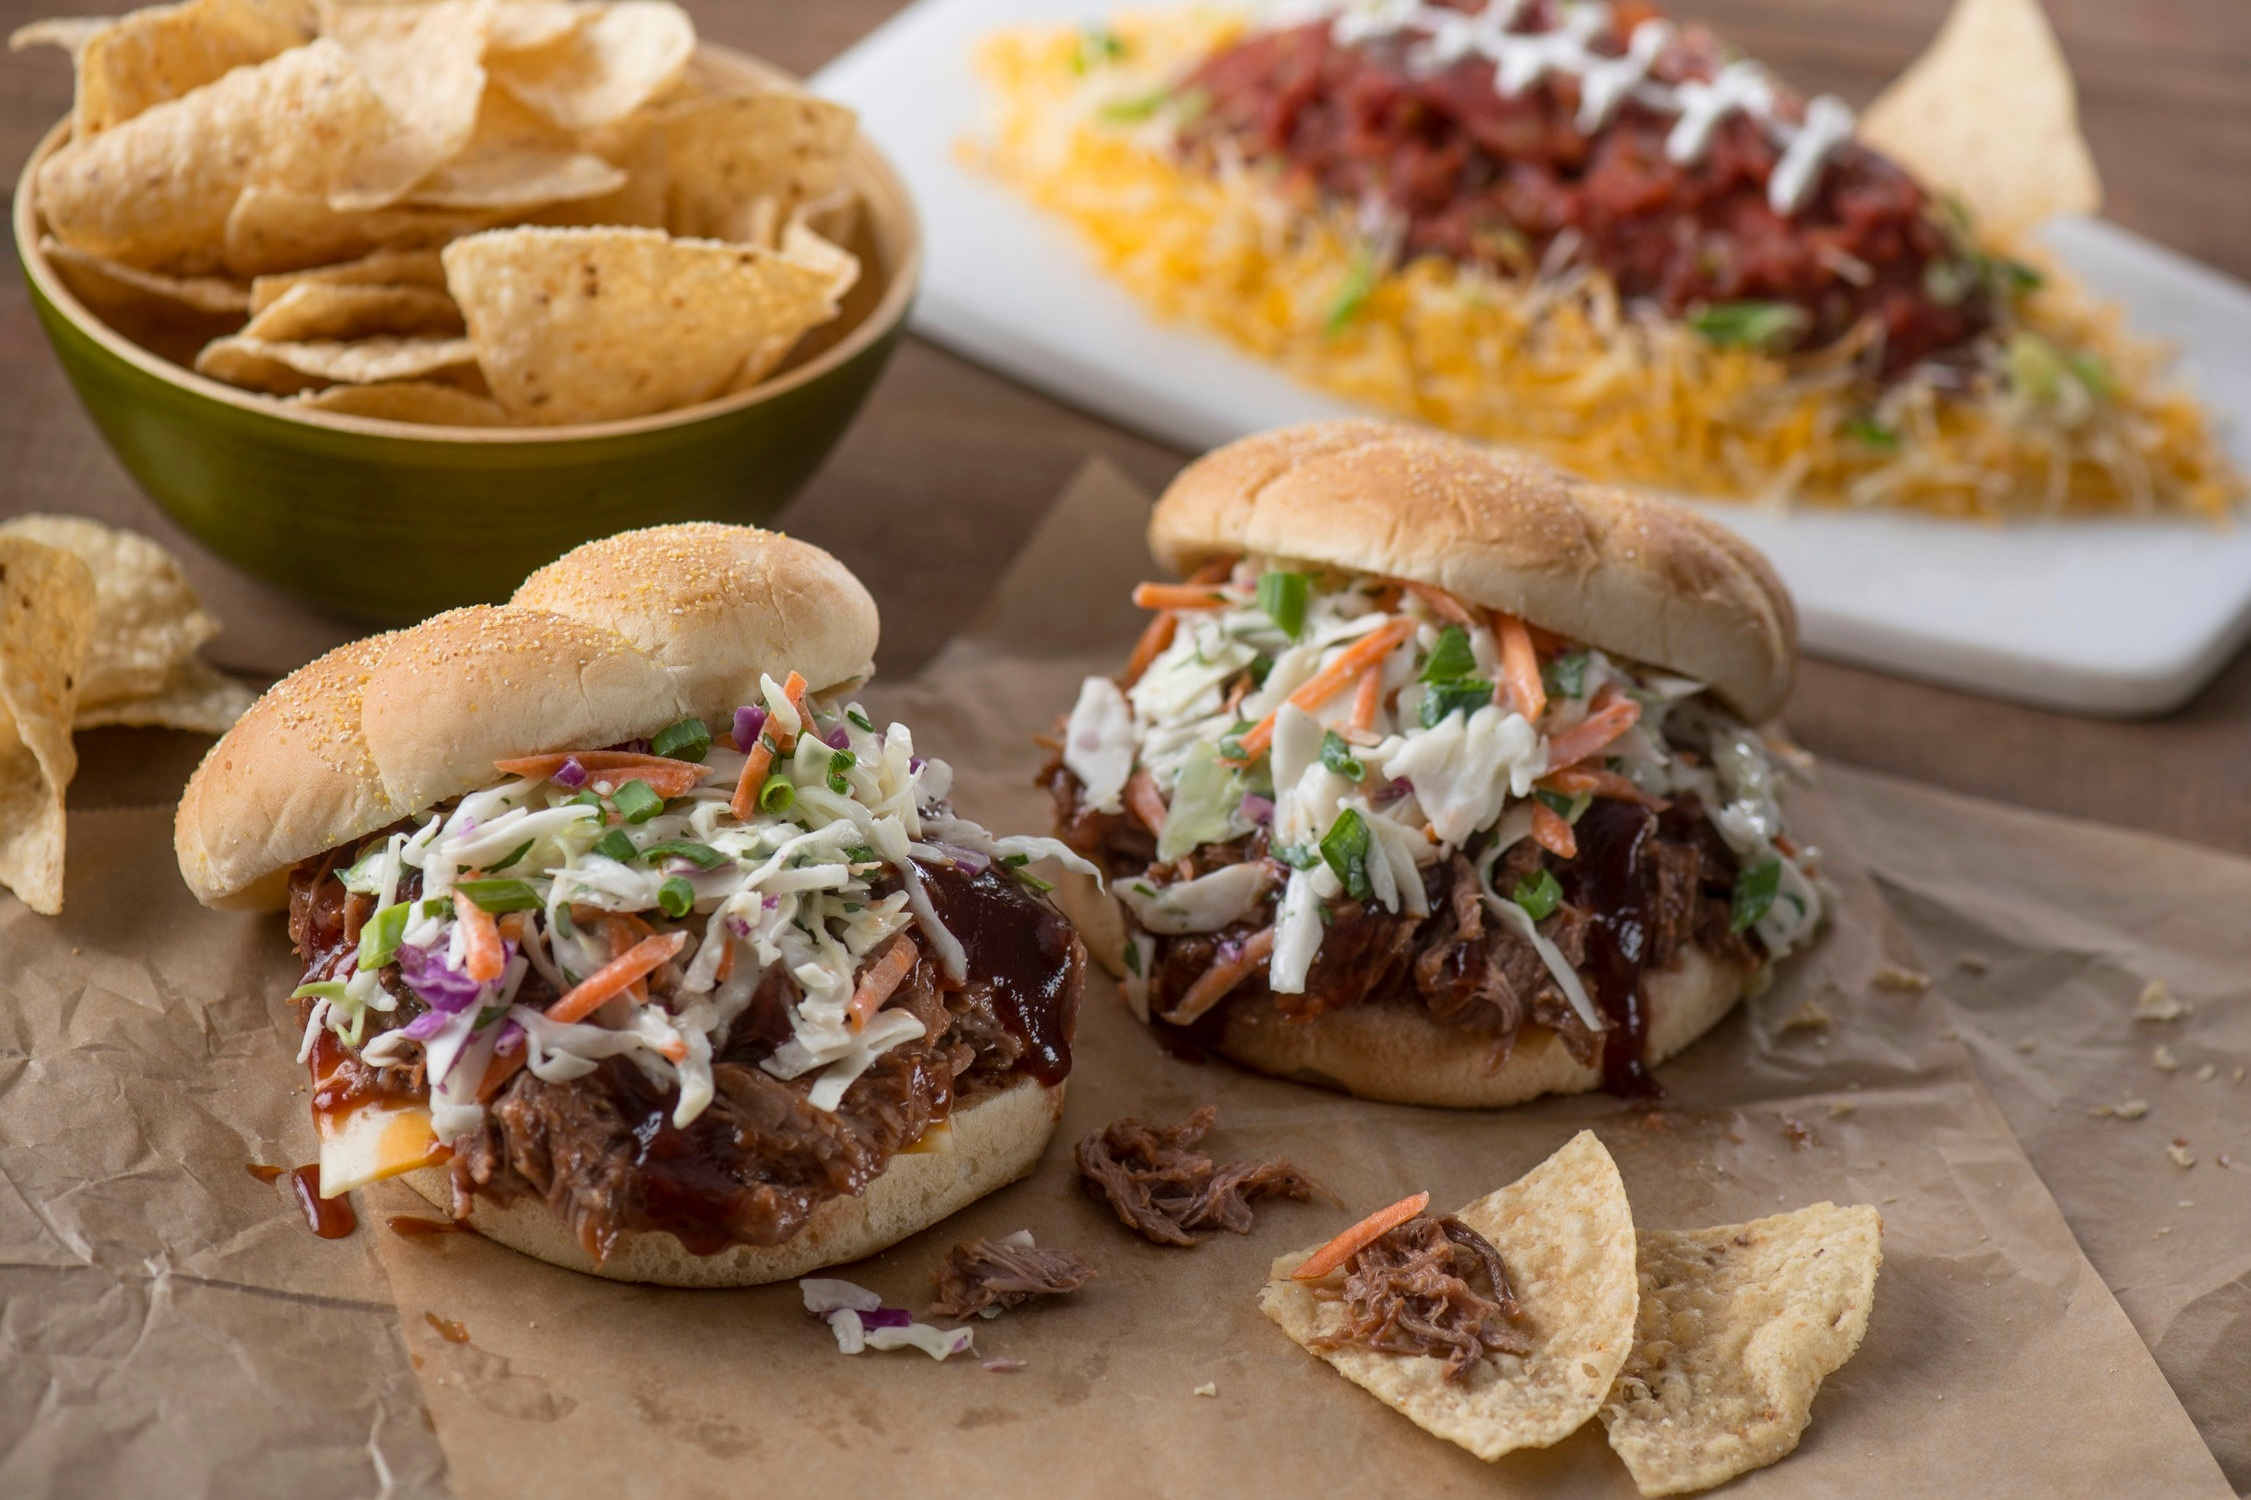 Slow Cooker Recipes for Easy Tailgating - We love a good slower cooker! All you need to do is throw some stuff in it, and a few hours later you have deliciousness (just make sure your fire alarm has batteries). You'll be able to feed your team without missing a play.